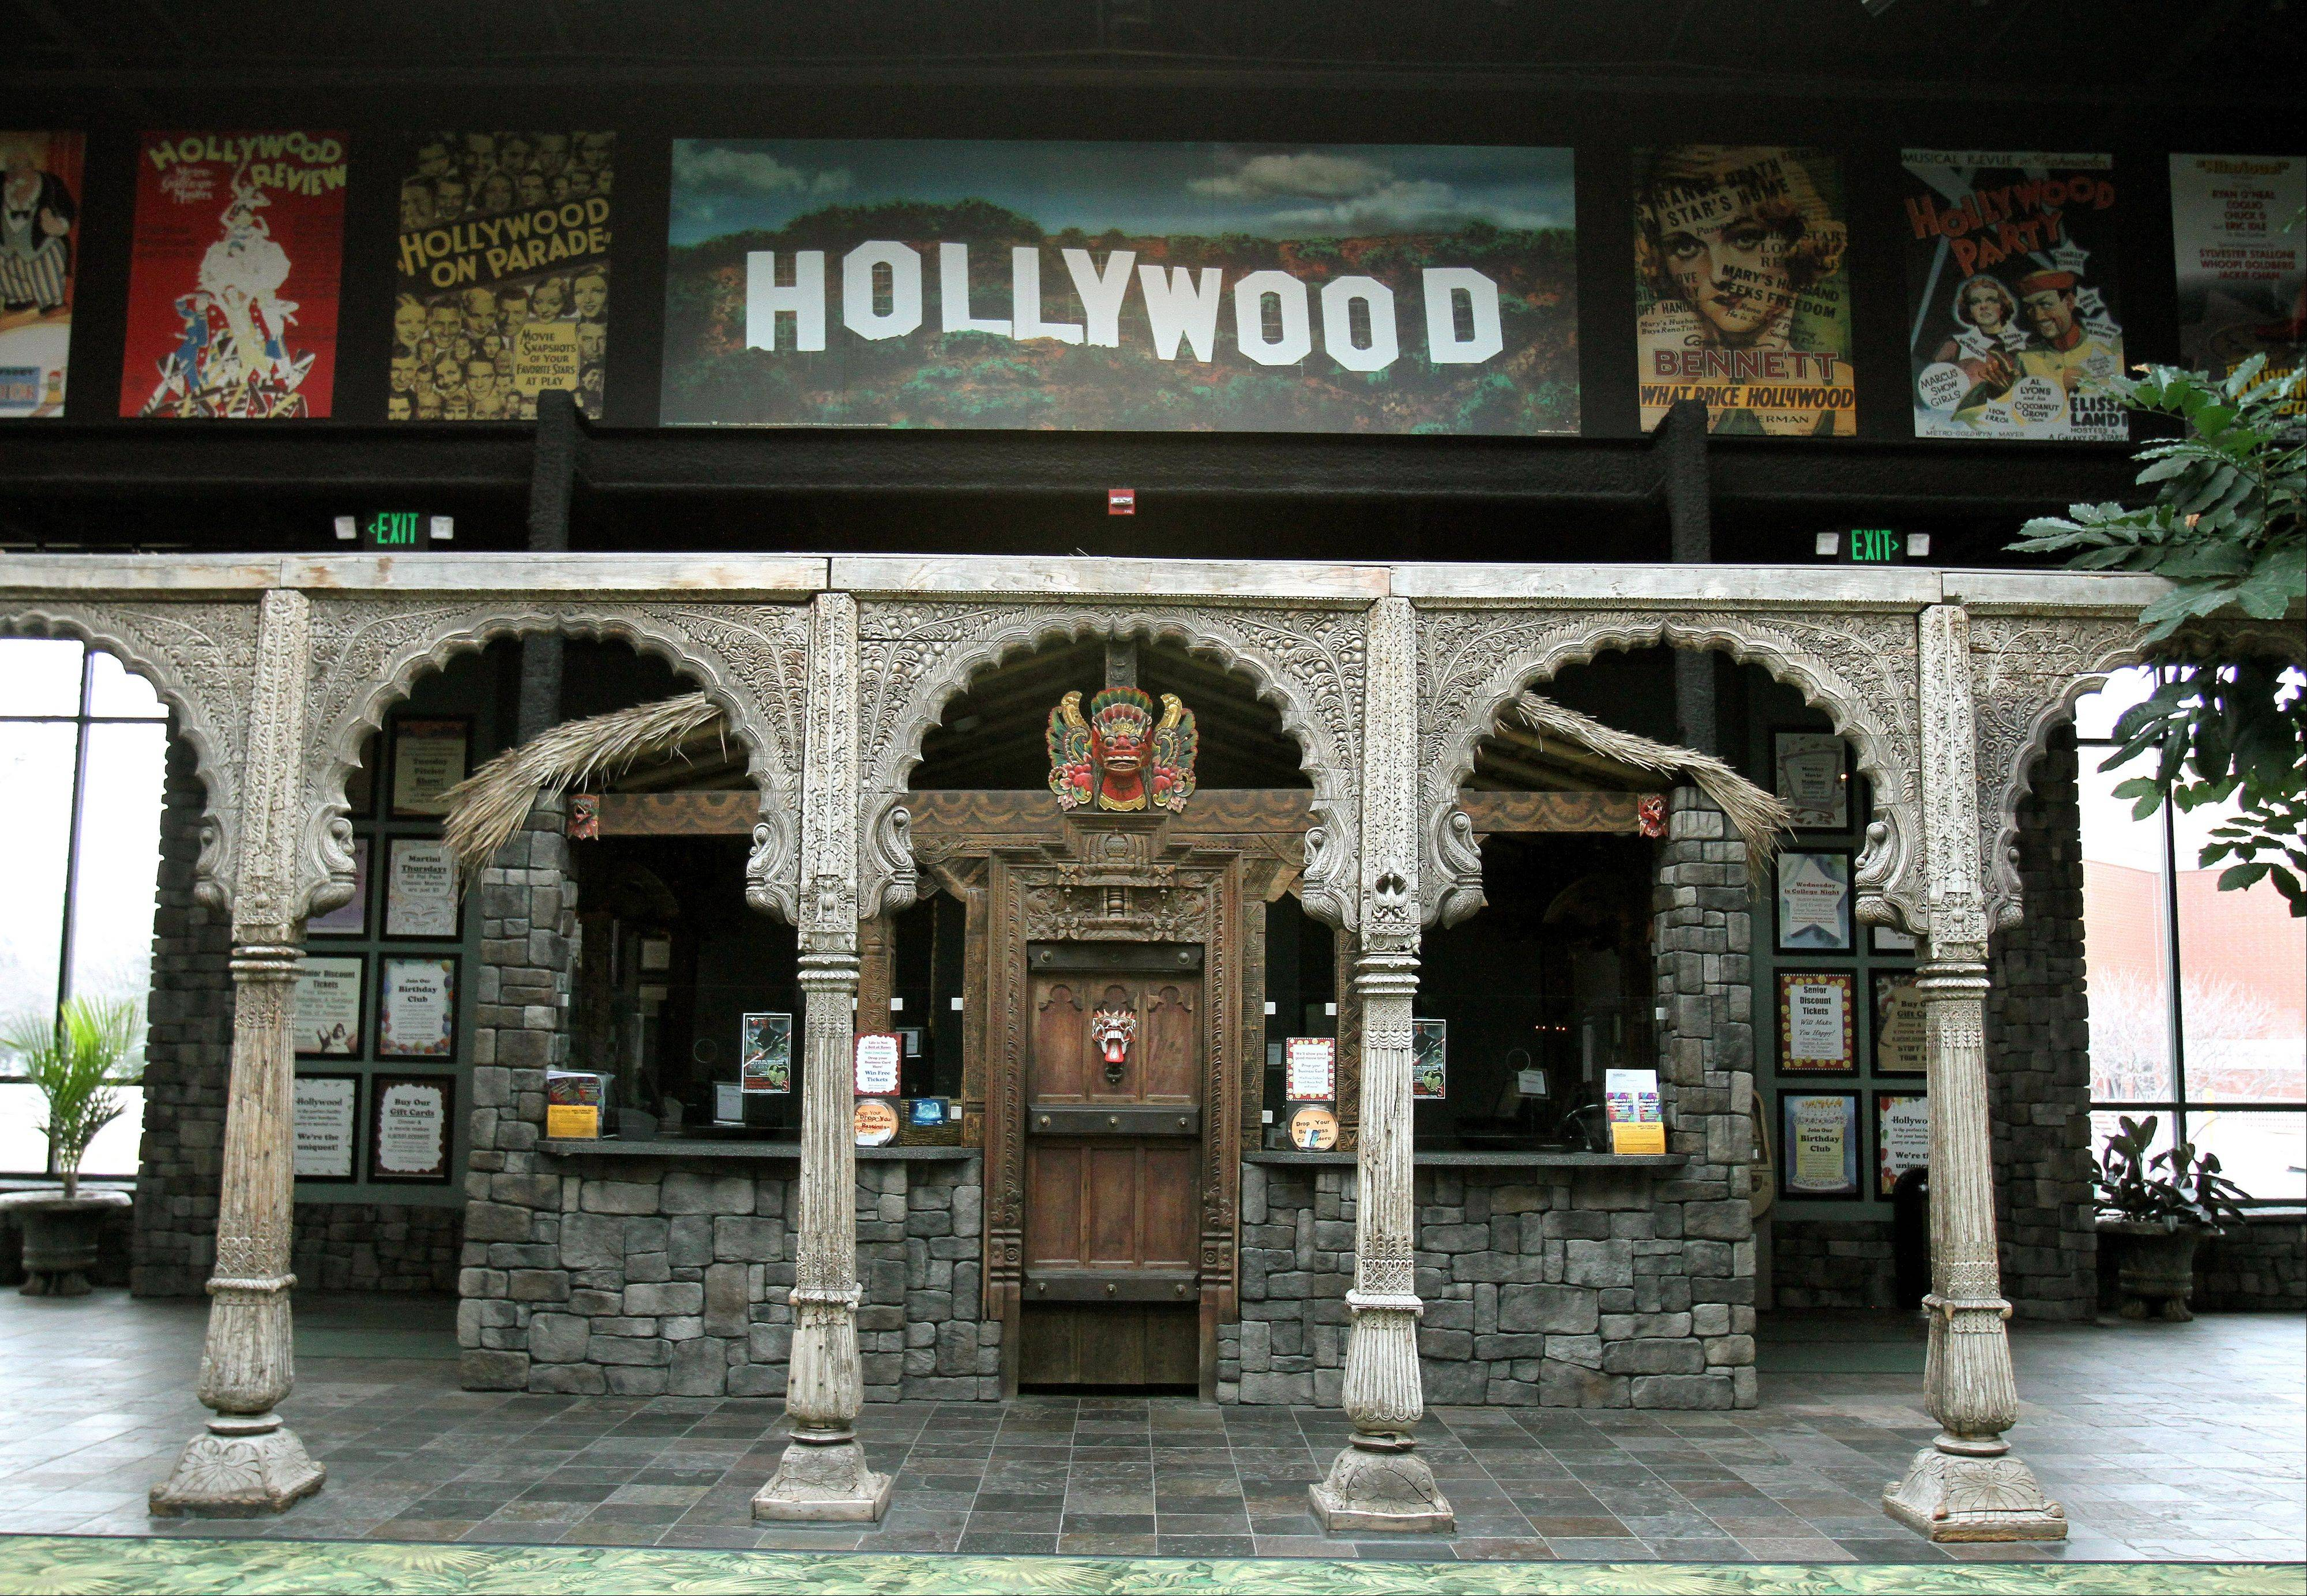 Doors from India, 200 year-old columns from Afghanistan and masks from Indonesia are part of the decor of the ticket office at Hollywood Palms Cinema in Naperville.